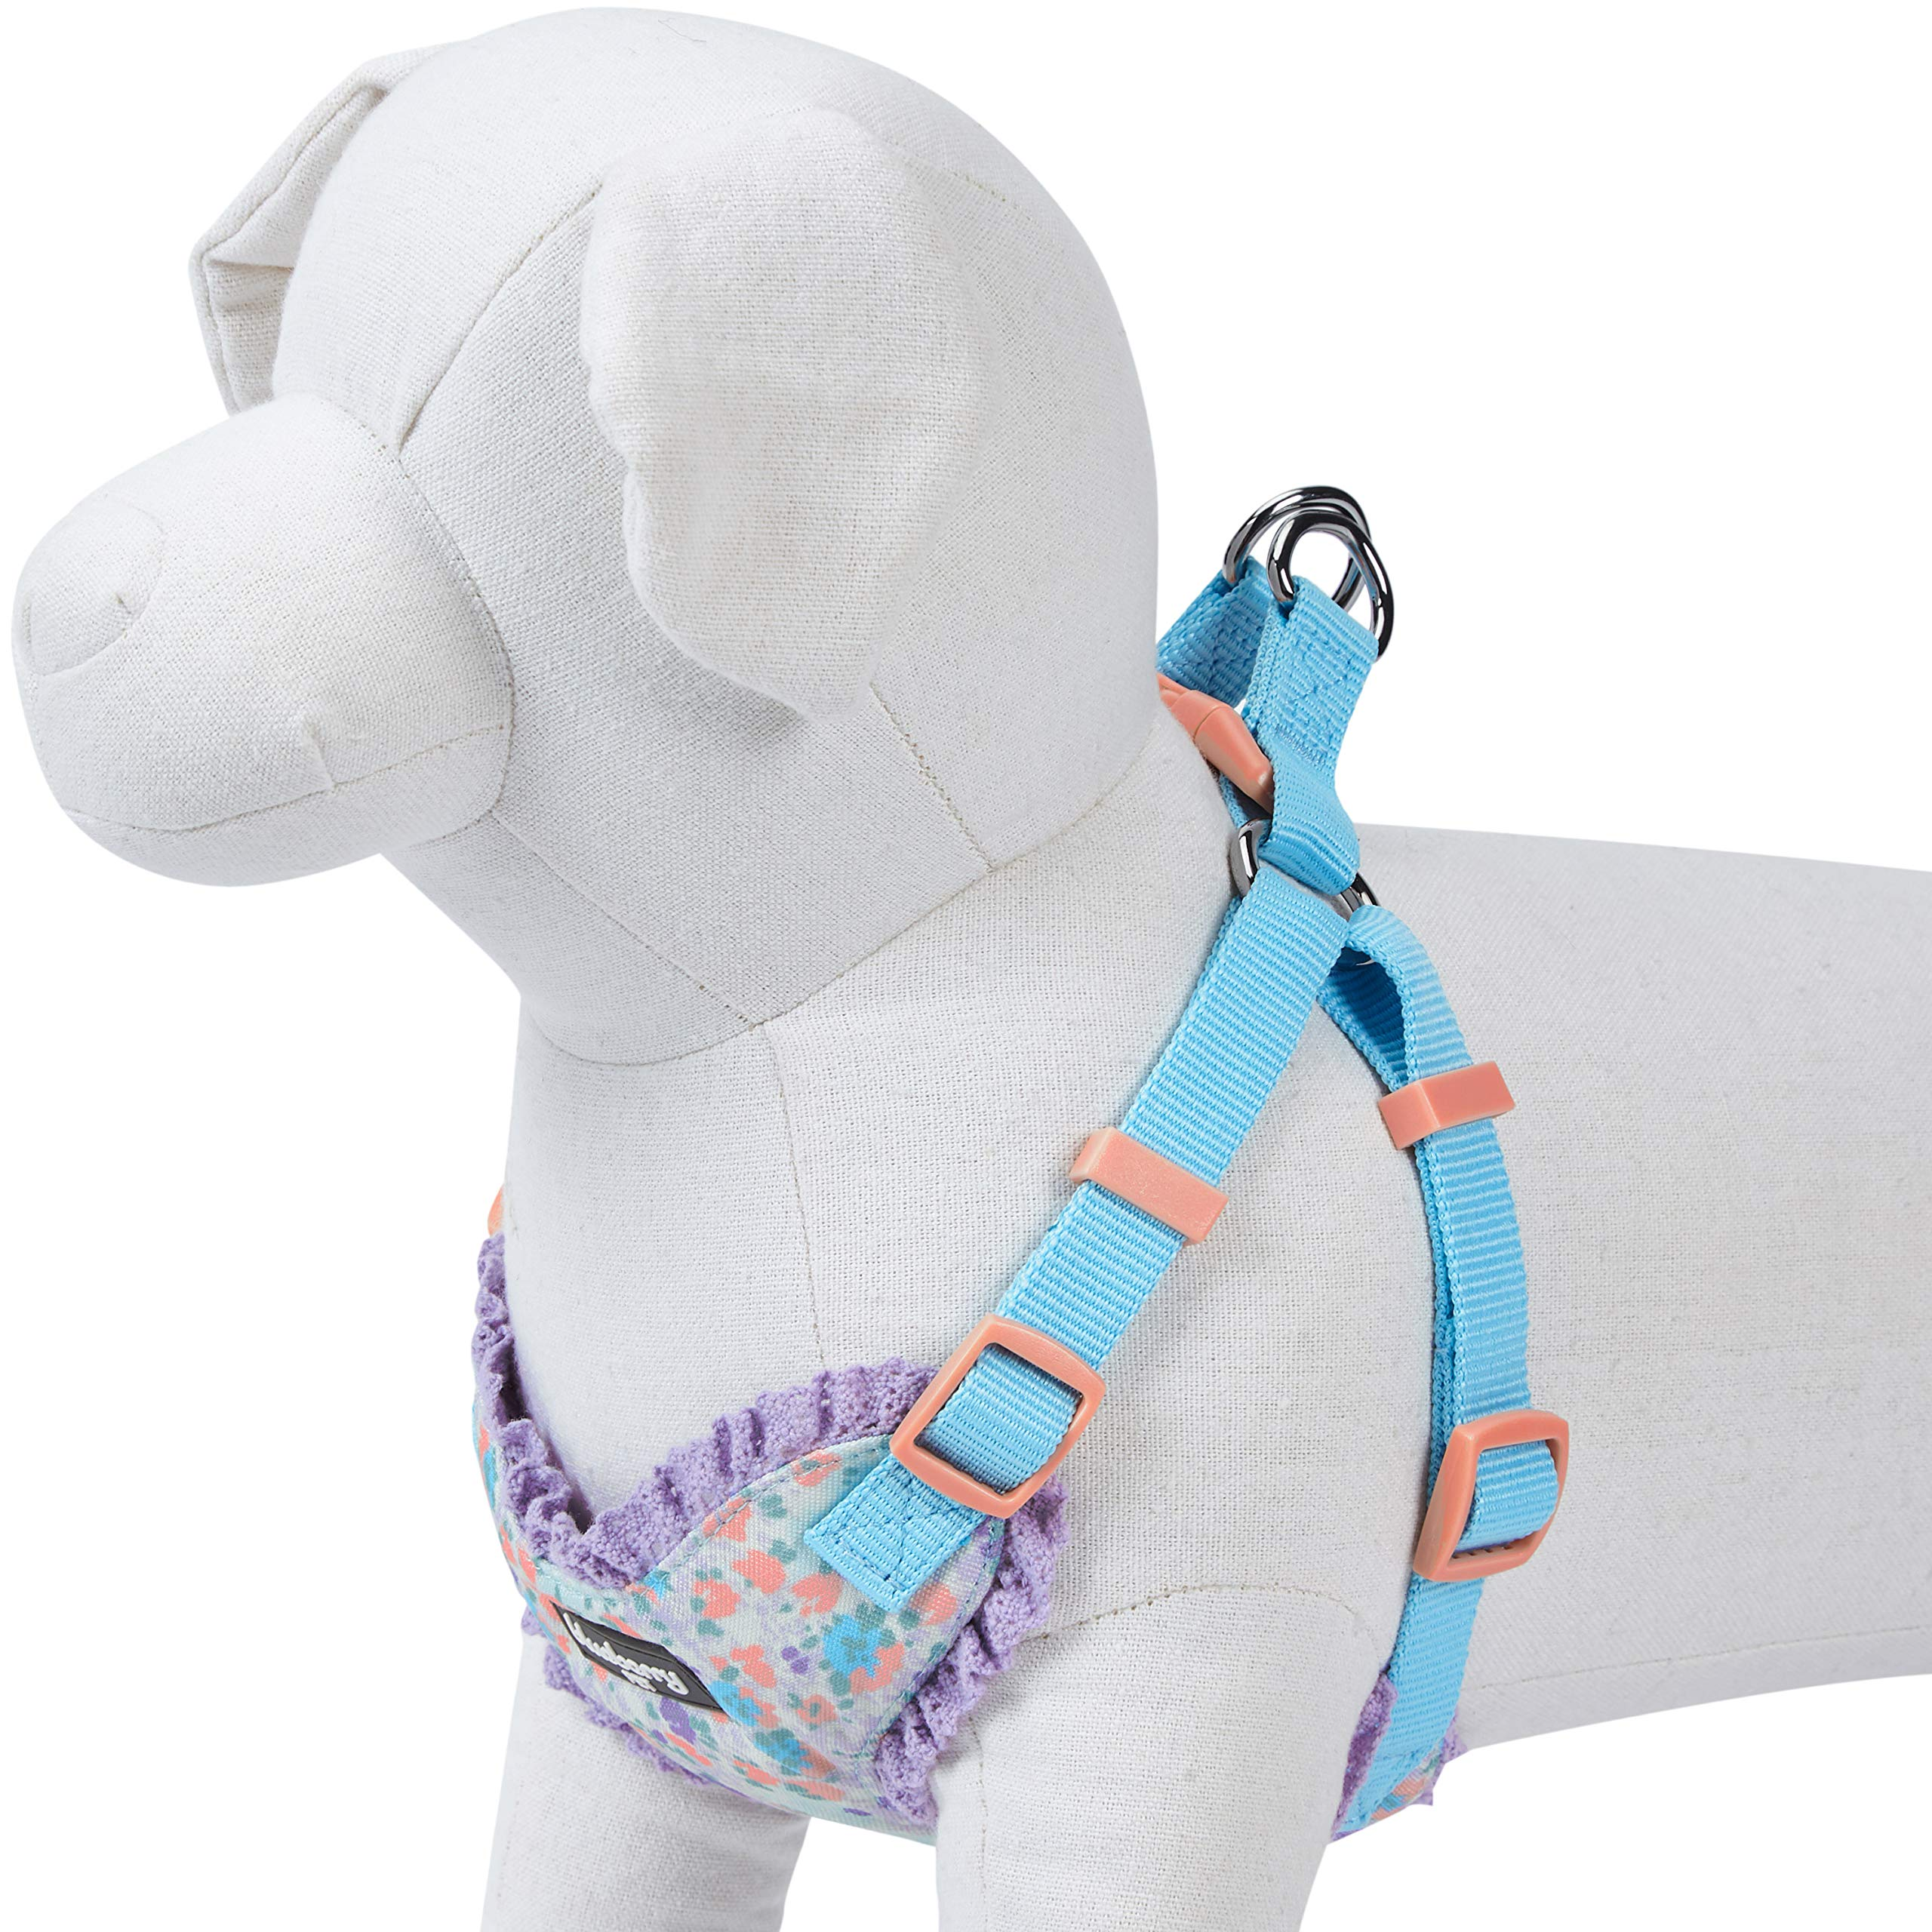 » Black Friday Deals on Selling Dog Collars have been announcedThe Doggy  Blogger c6e6b6a0bc0f3